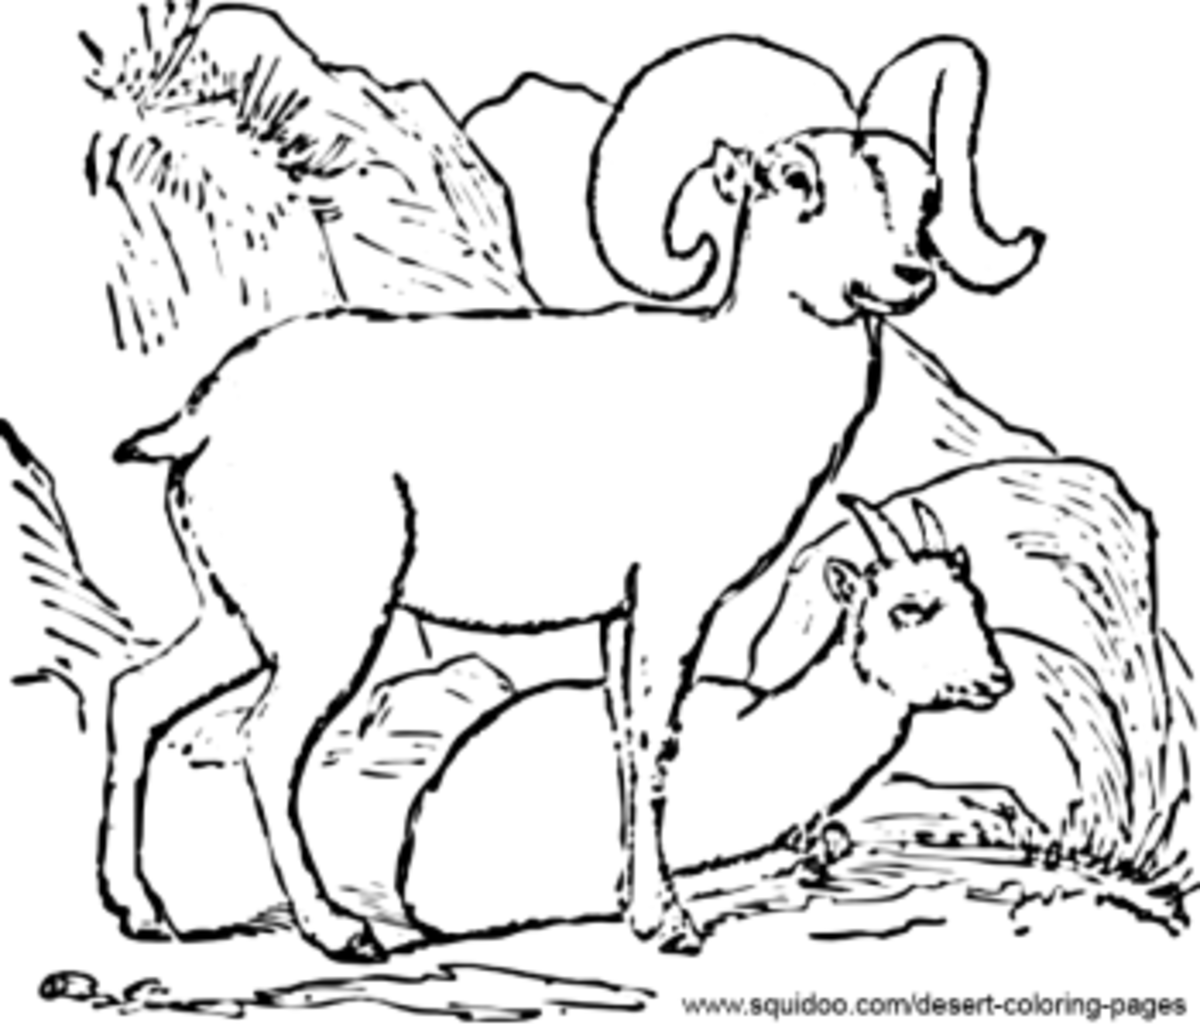 Bighorn desert sheep coloring pages